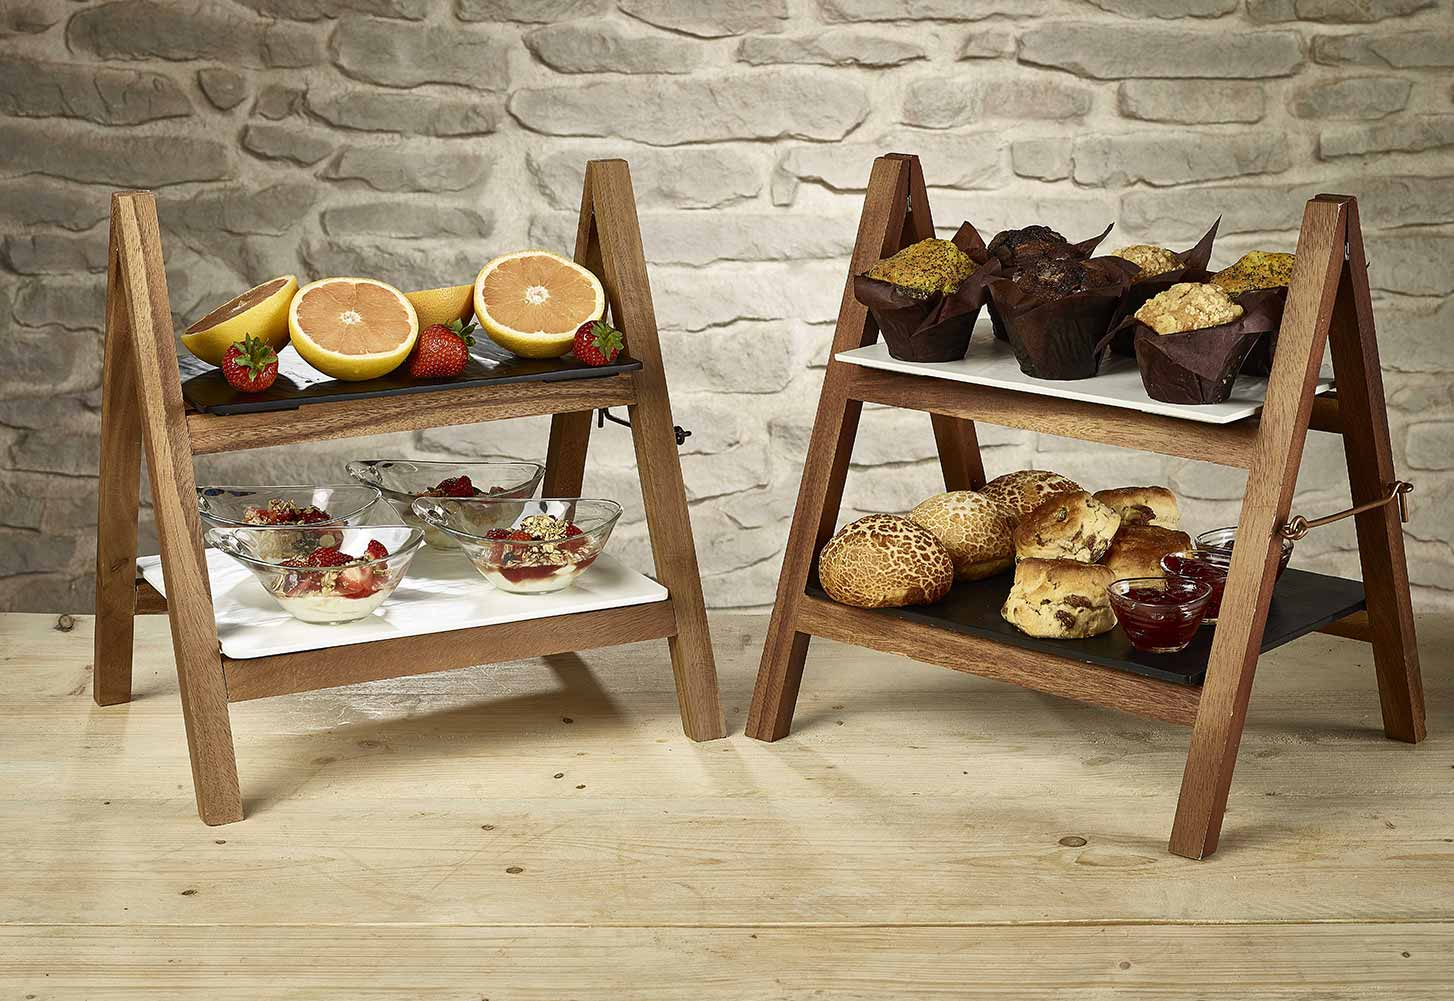 Step up For Buffet Display!